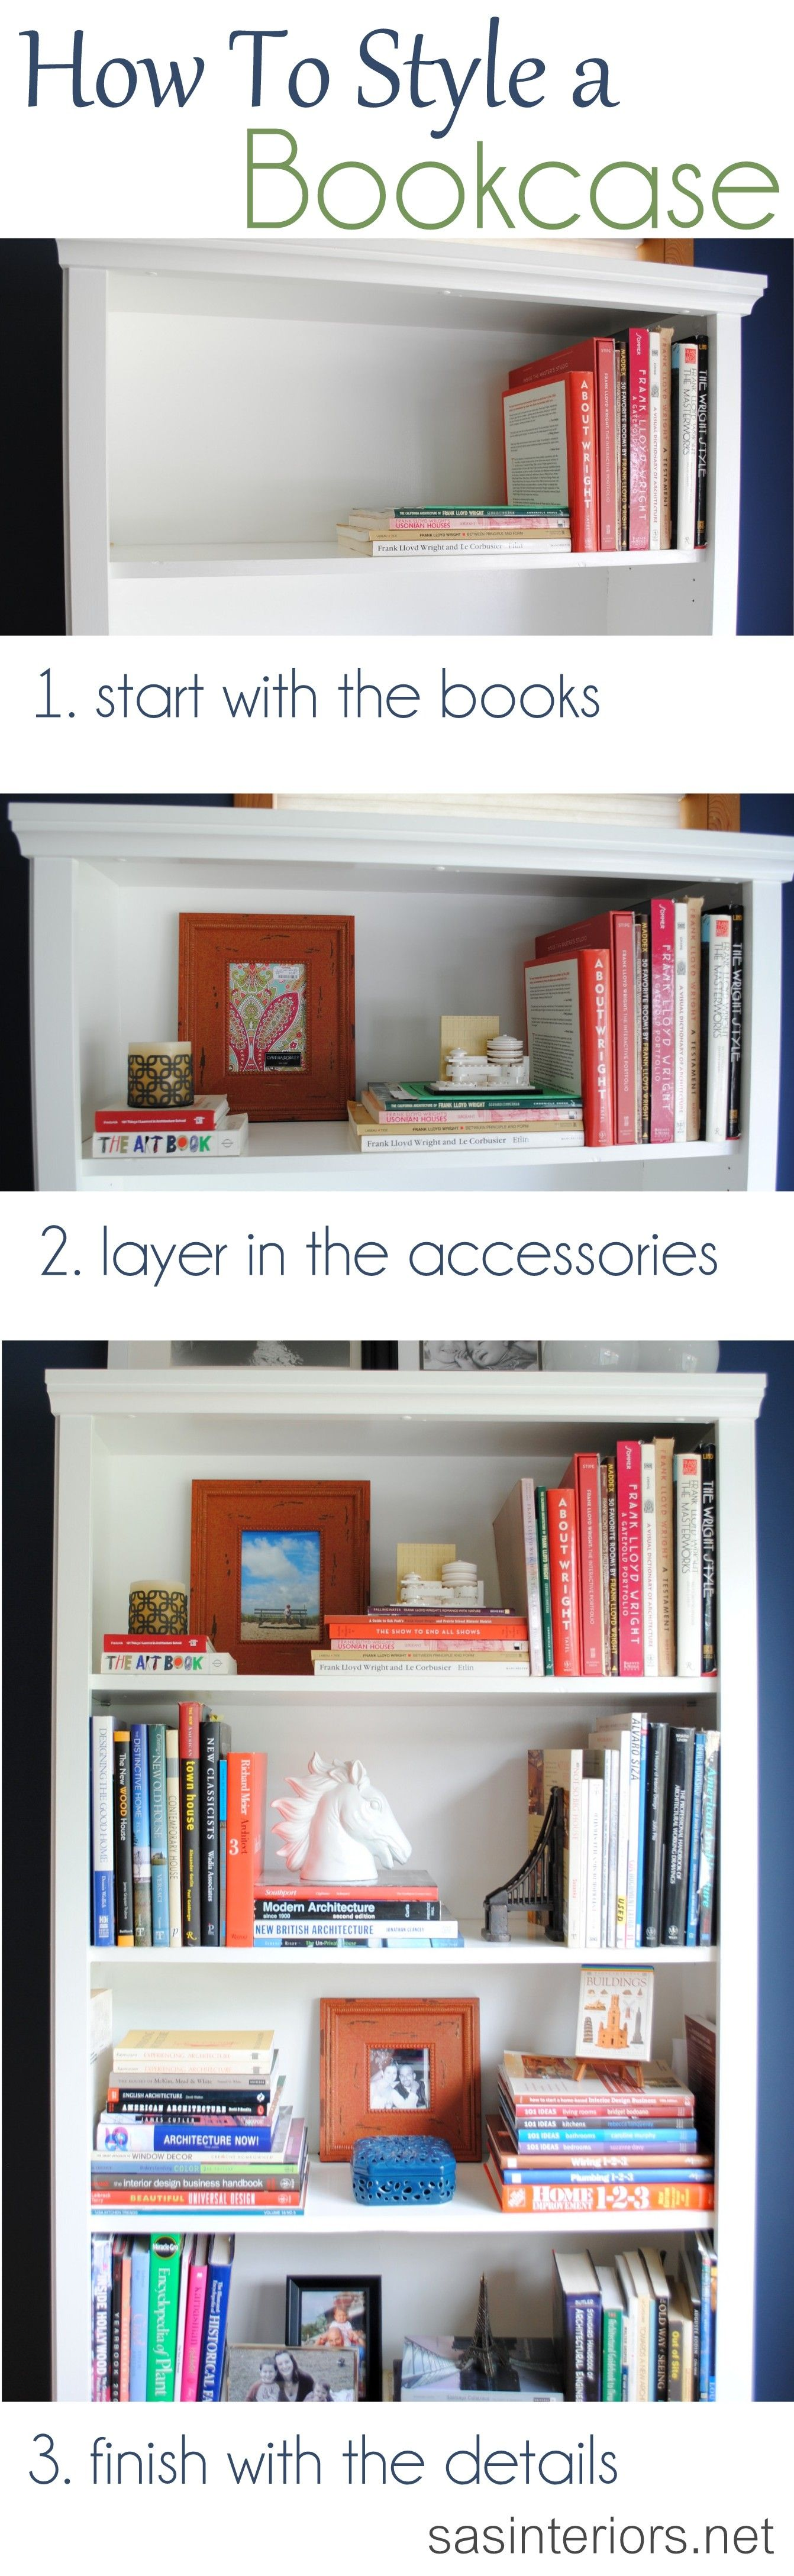 Flexible Ways To Decorate With Hanging Shelves | myownarticle.info